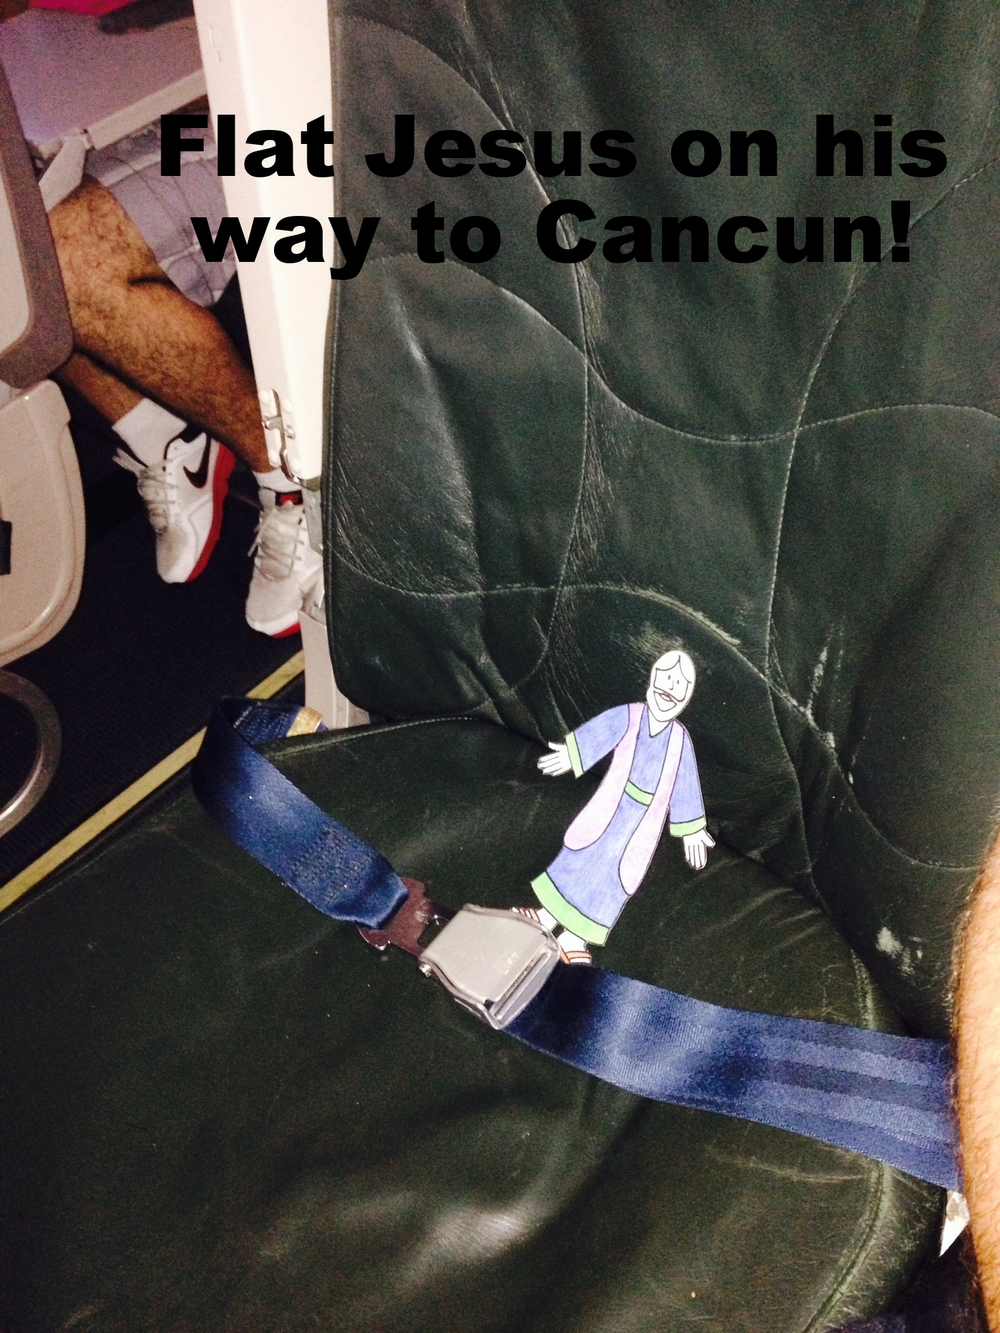 Flat Jesus on his way to Cancun with Danny and Kenny.